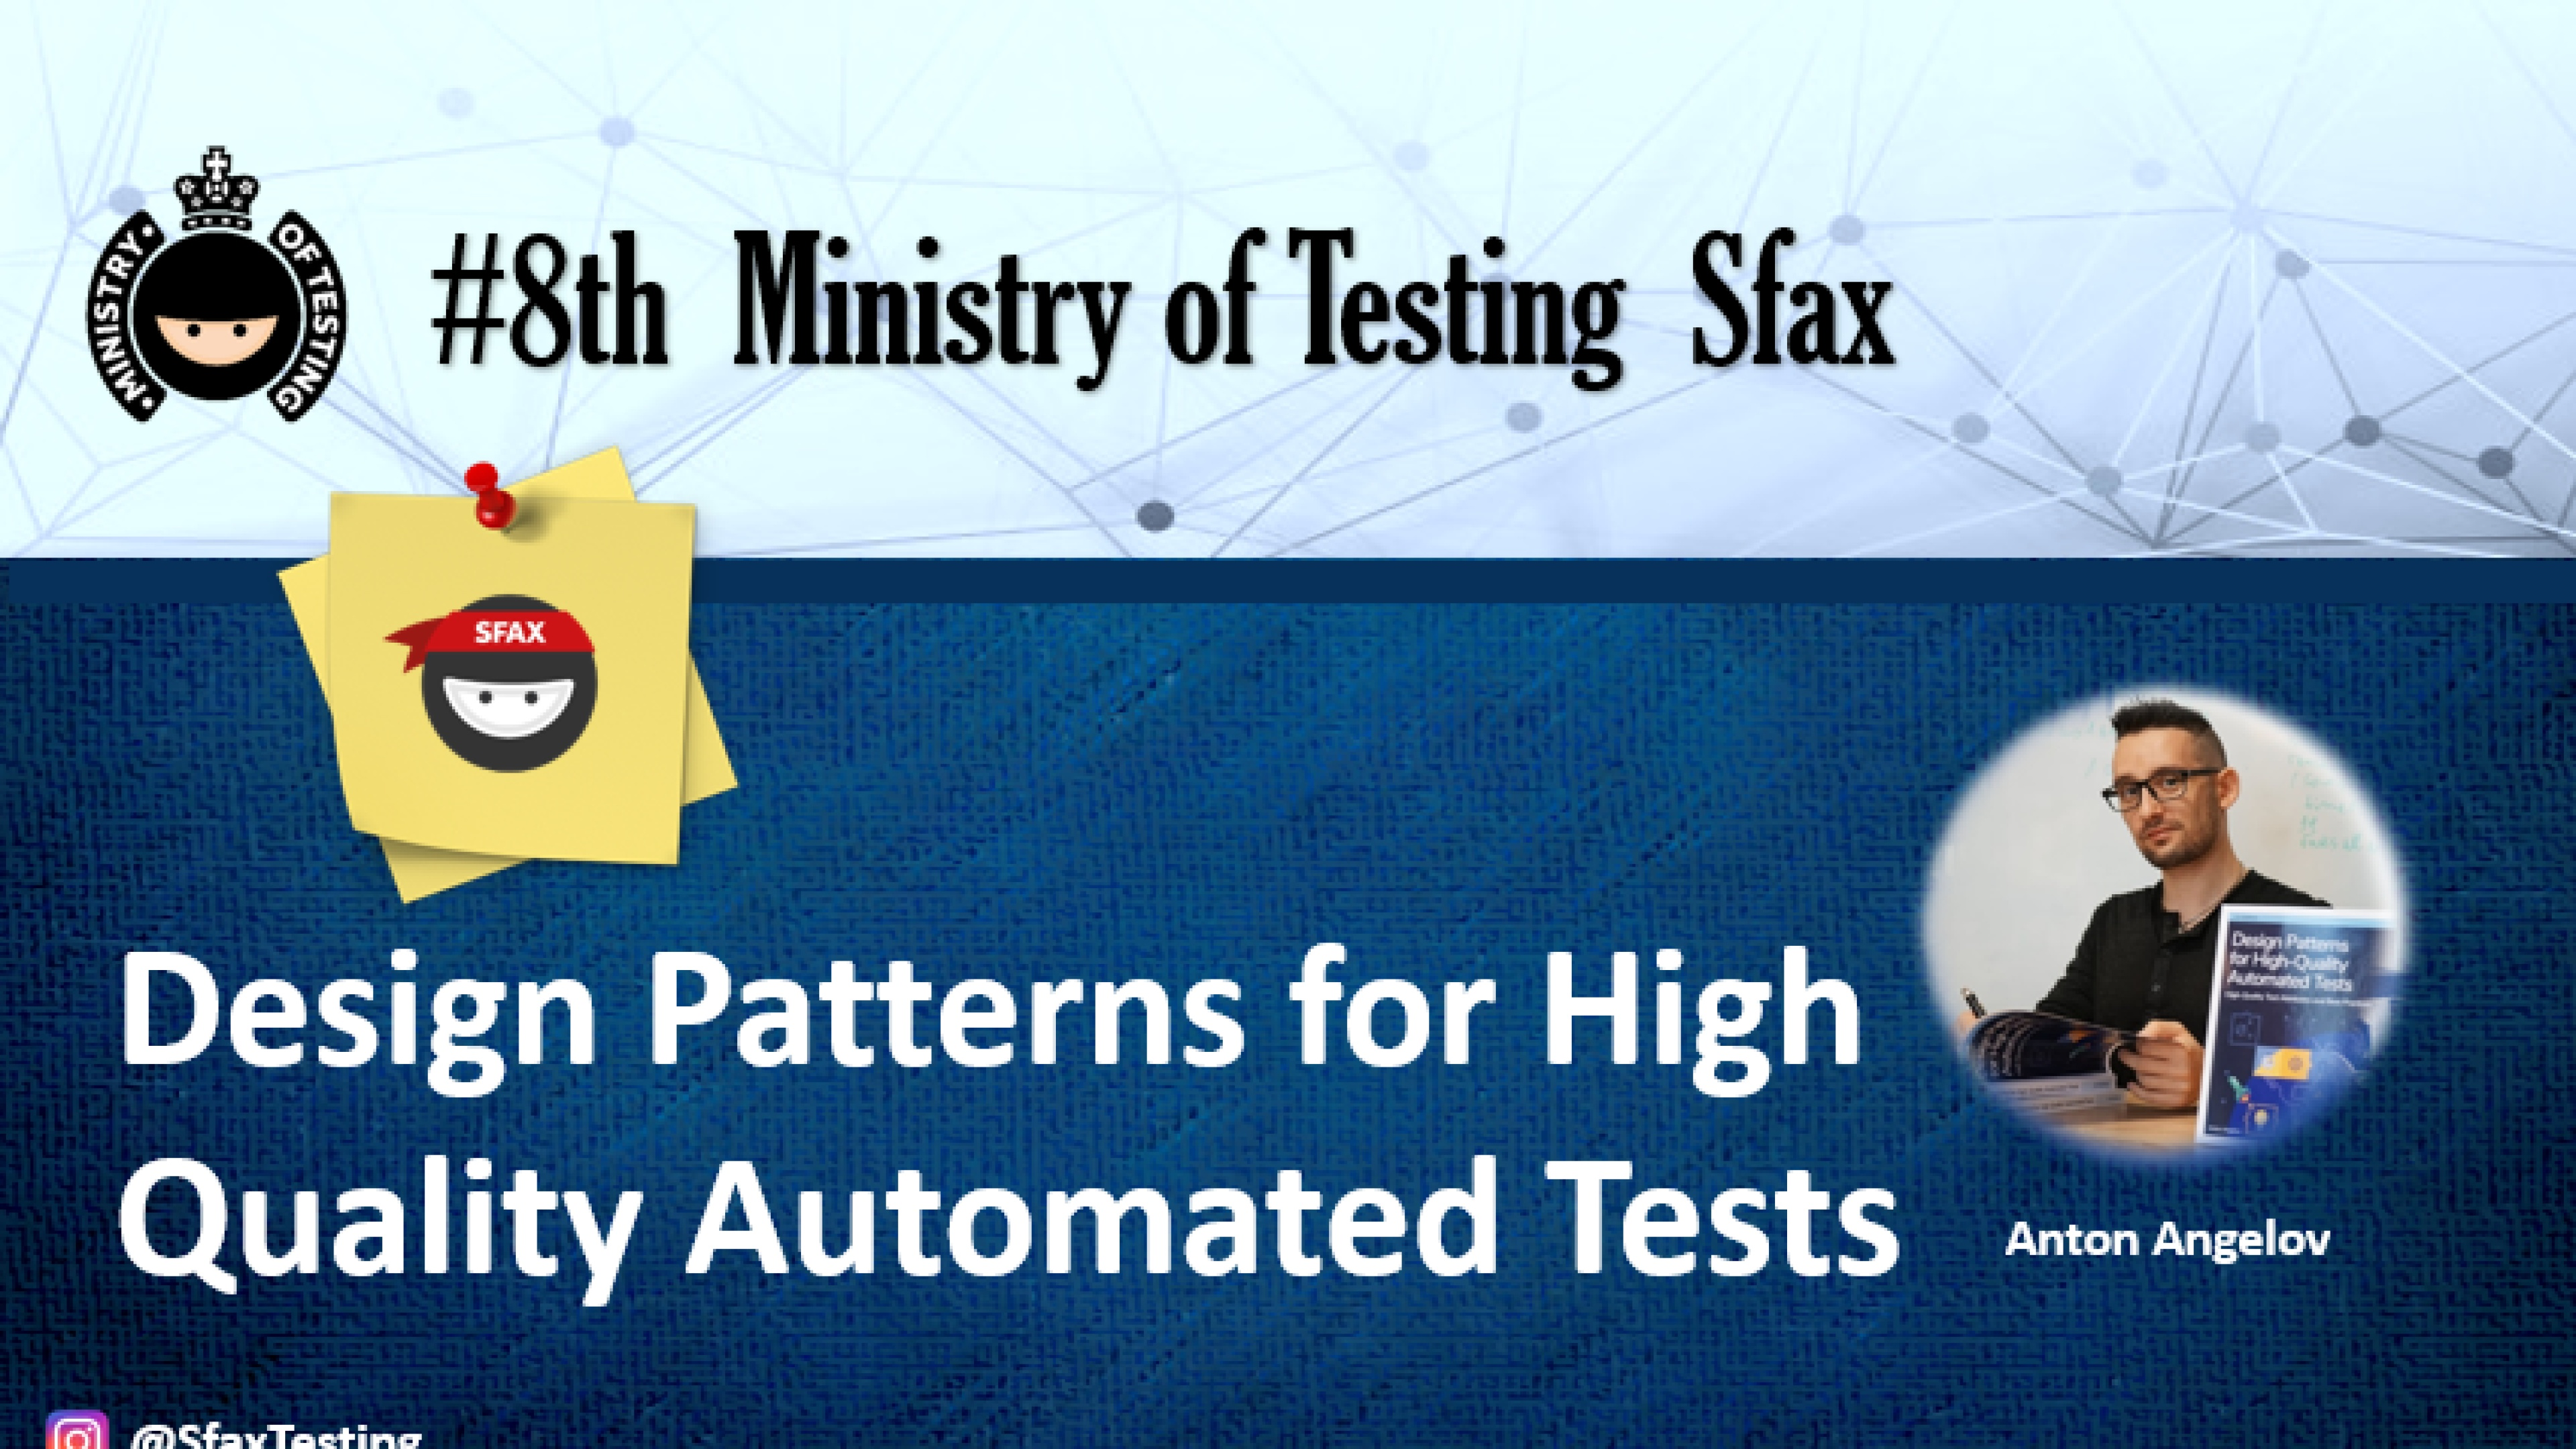 Design Patterns for High Quality Automated Tests - Anton Angelov